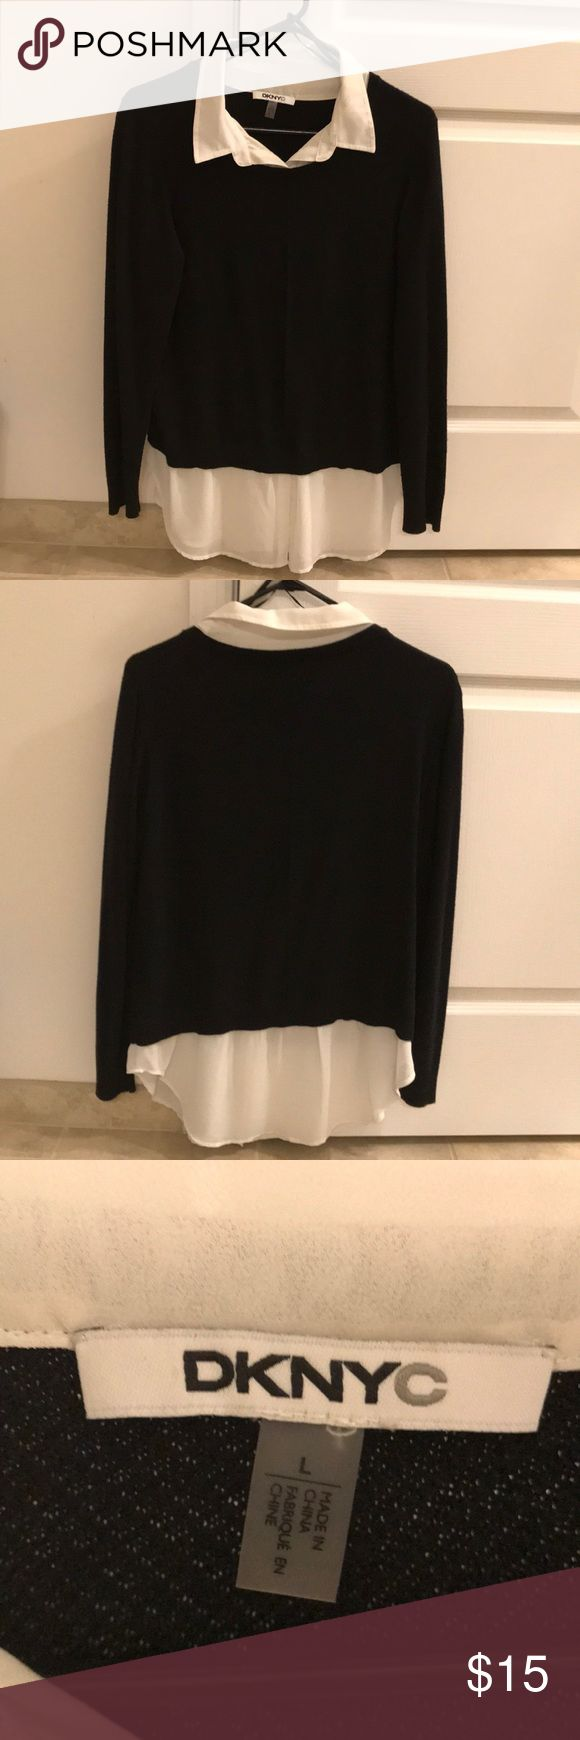 DKNYC Layered Look-Built In Faux Shirt Pullover Excellent Used Condition. DKNYC Womens Layered Look-Built In Faux Shirt Pullover Sweater. Black & White. DKNYC Sweaters